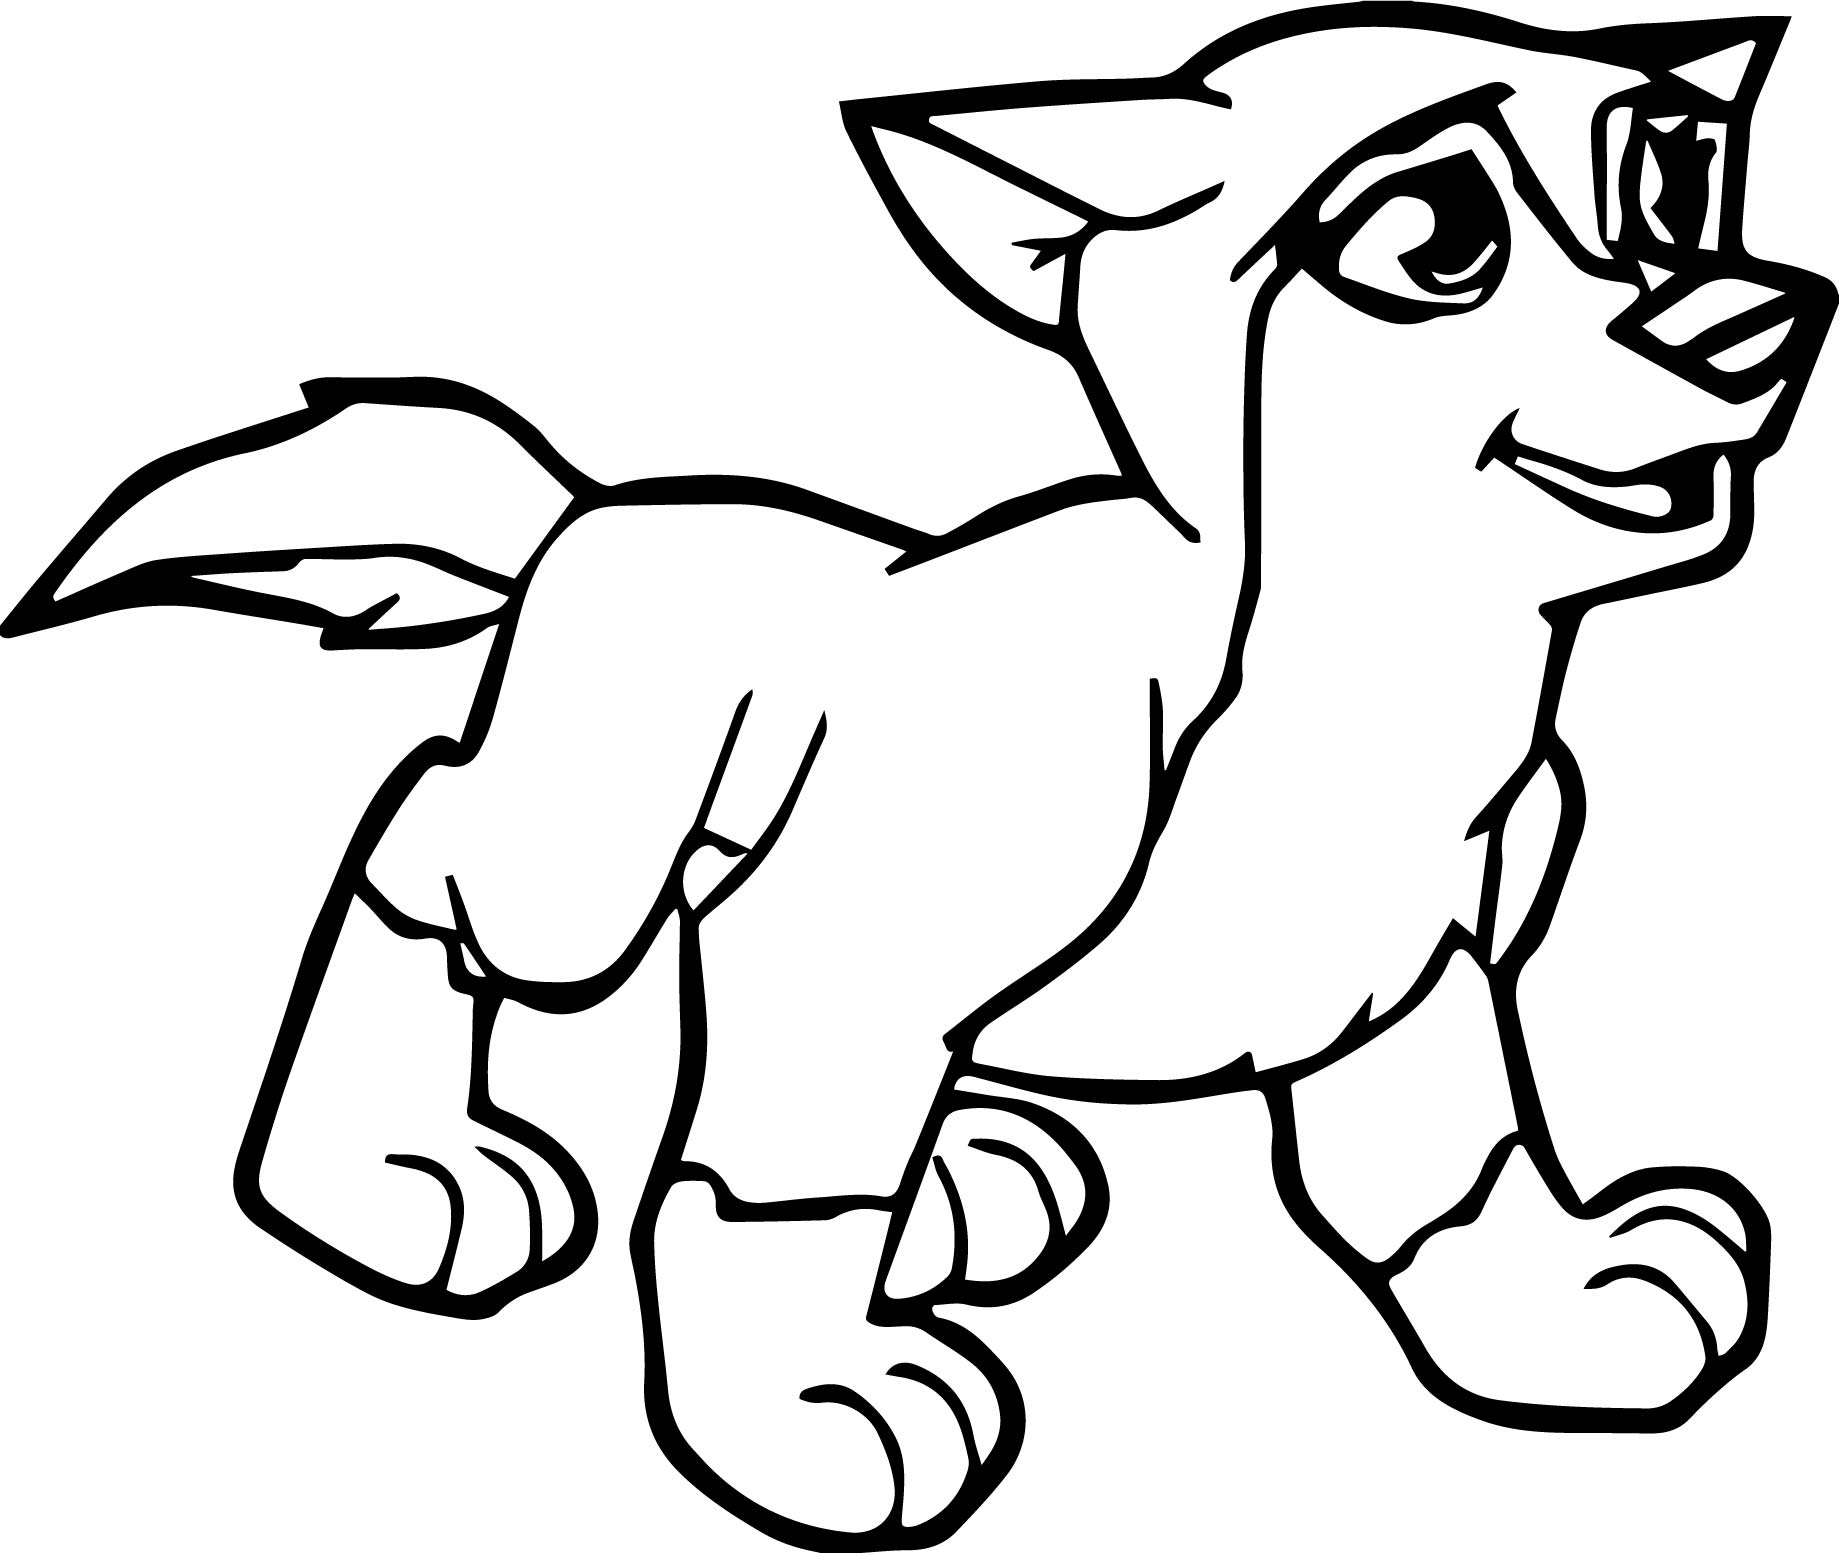 Wolf Coloring Page Young Alpha and Omega Wolf Coloring Page Collection Of Wolves Coloring Pages Wolf Coloring Pages Free Coloring Pages Collection